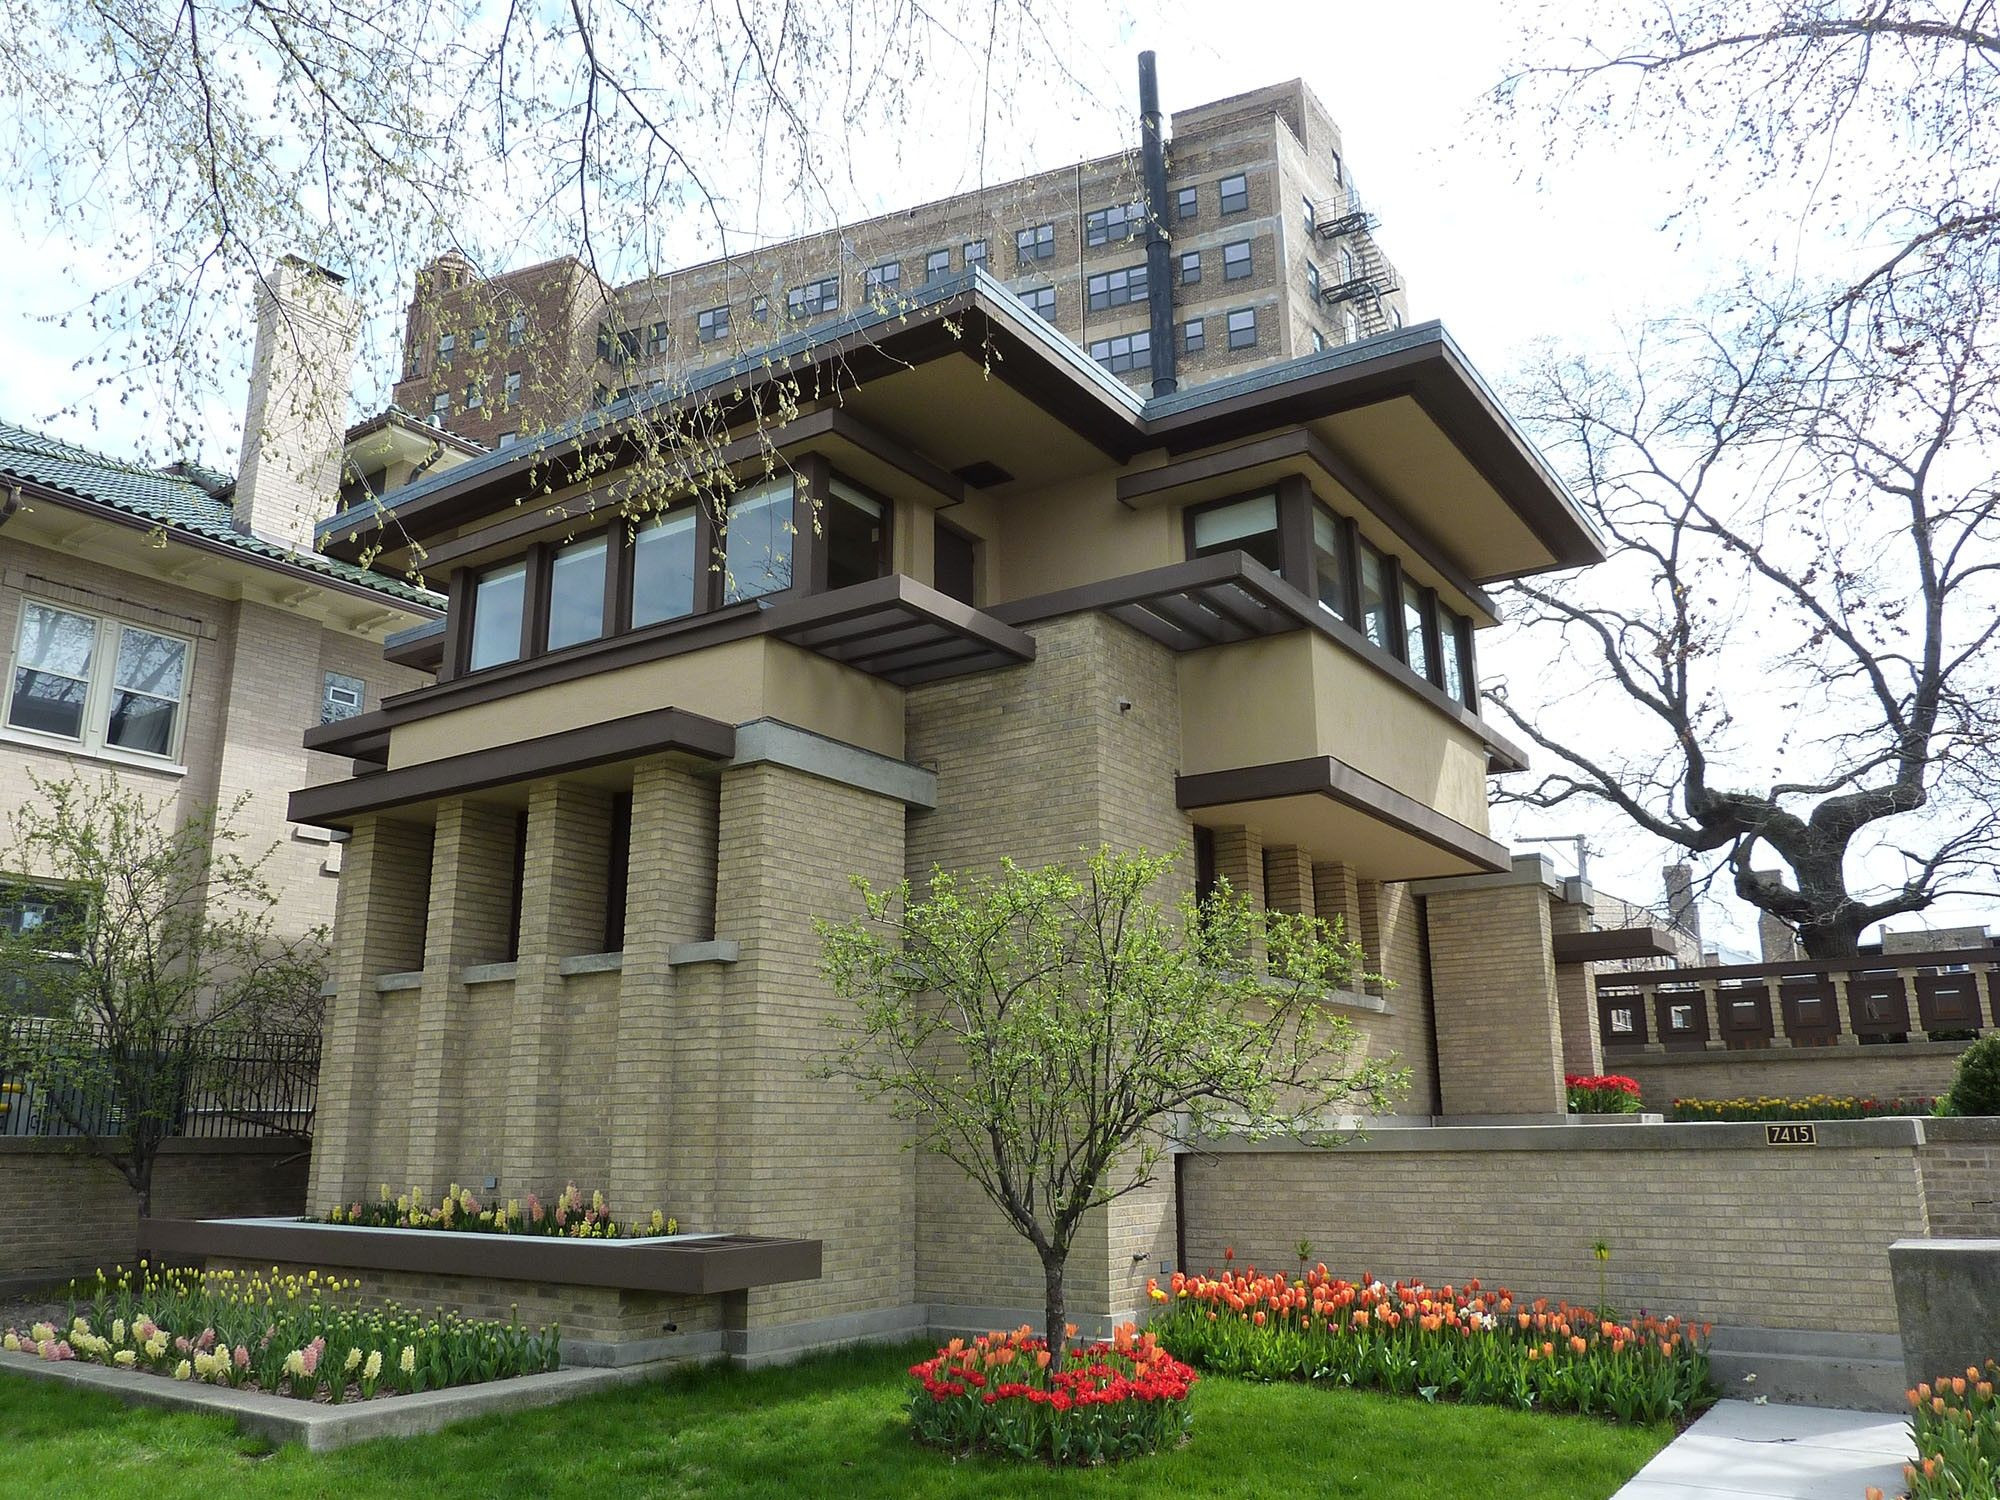 Frank Lloyd Wright Prairie Houses frank lloyd wright's prairie school architecture is often